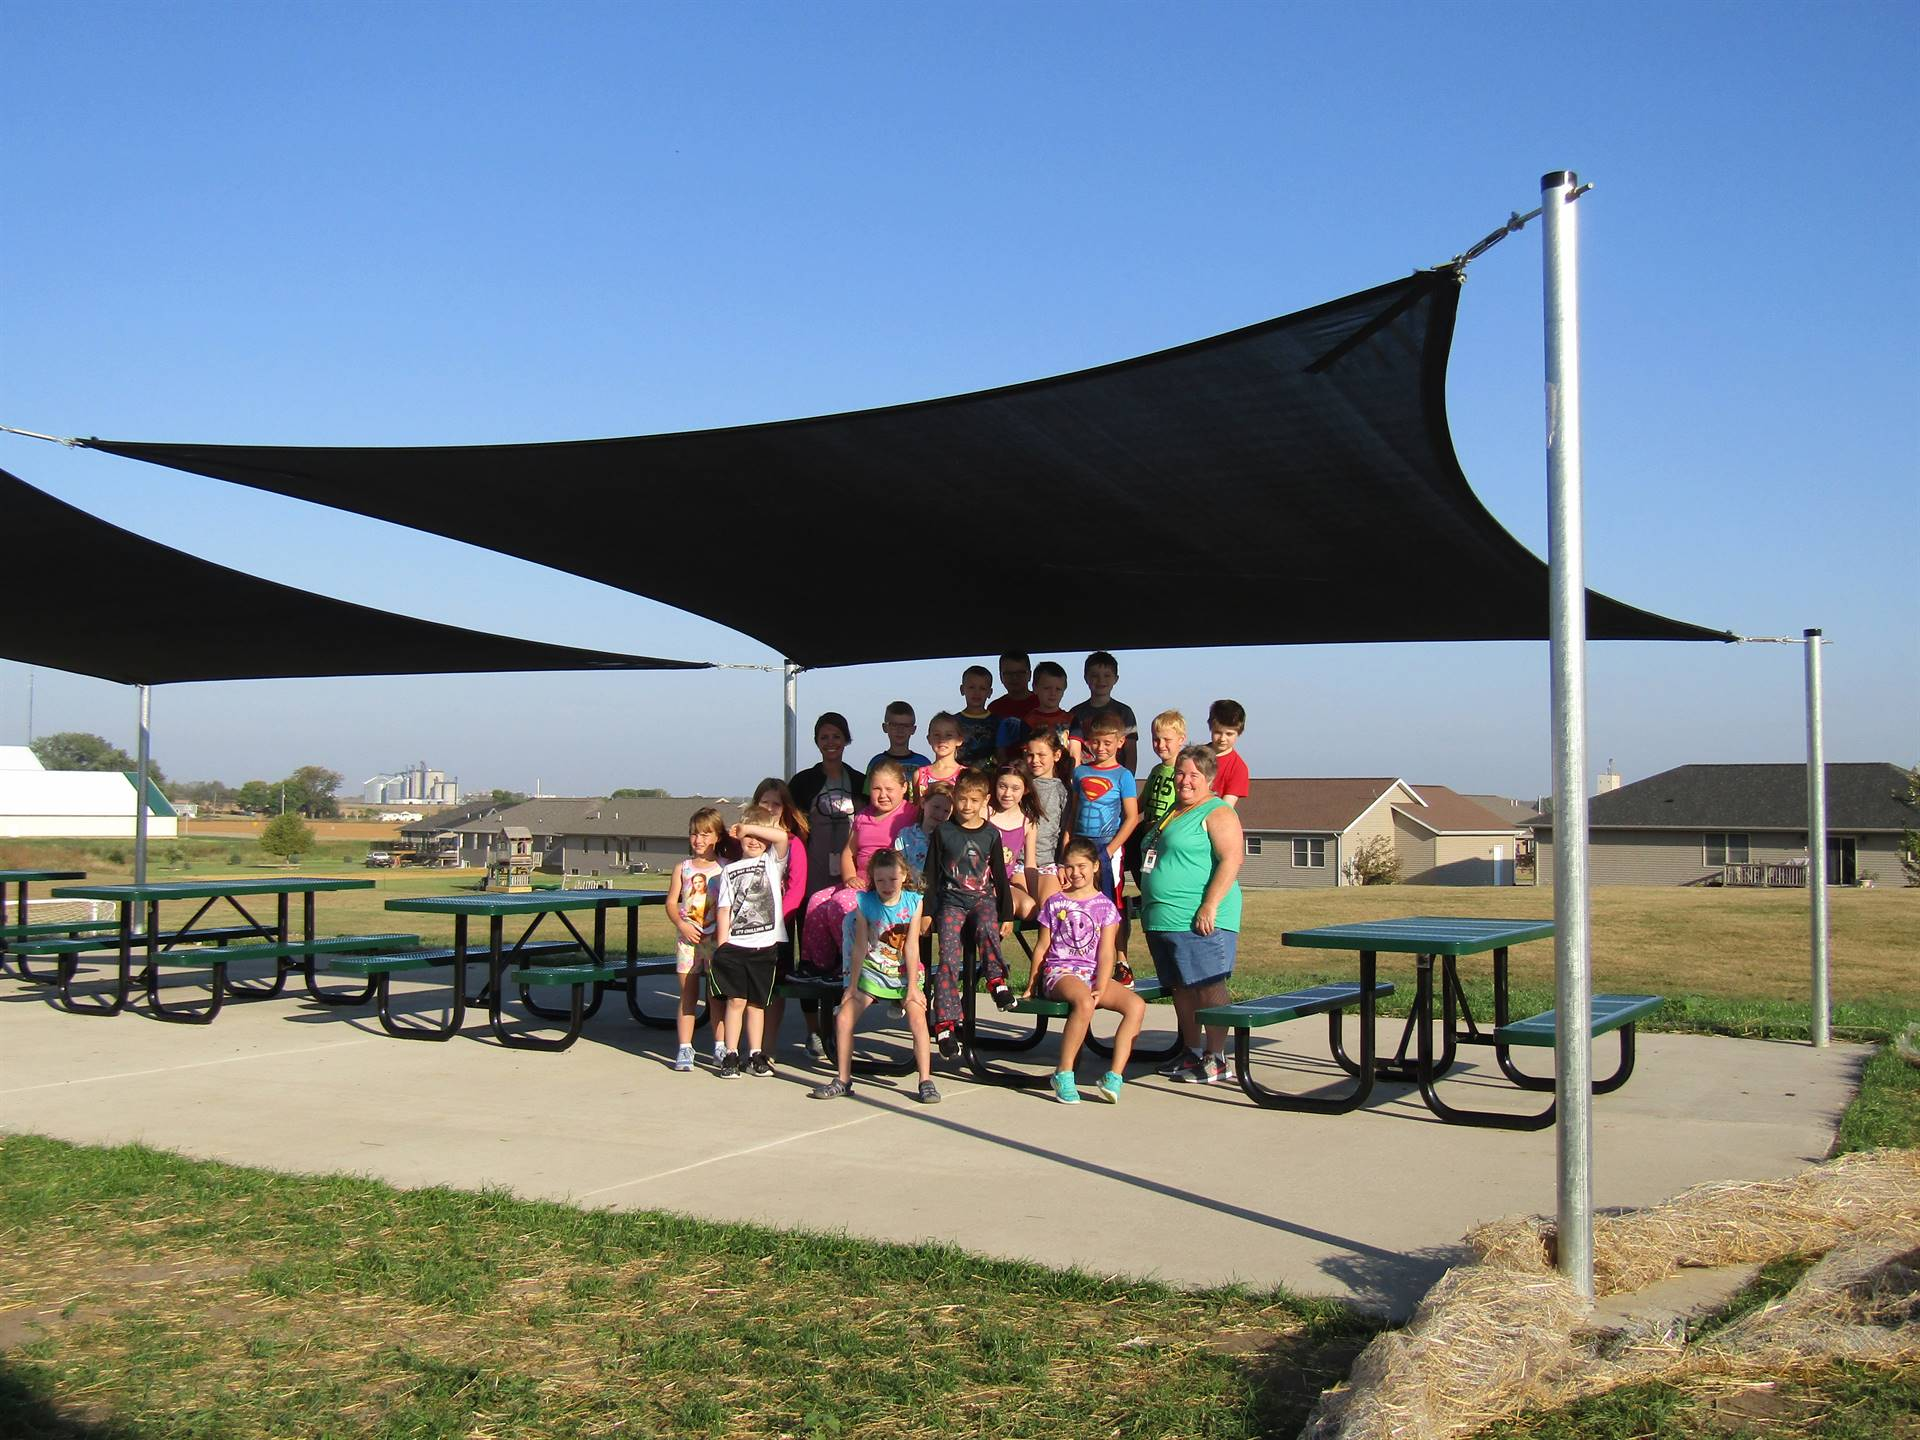 shade structure will help with heat at recess time